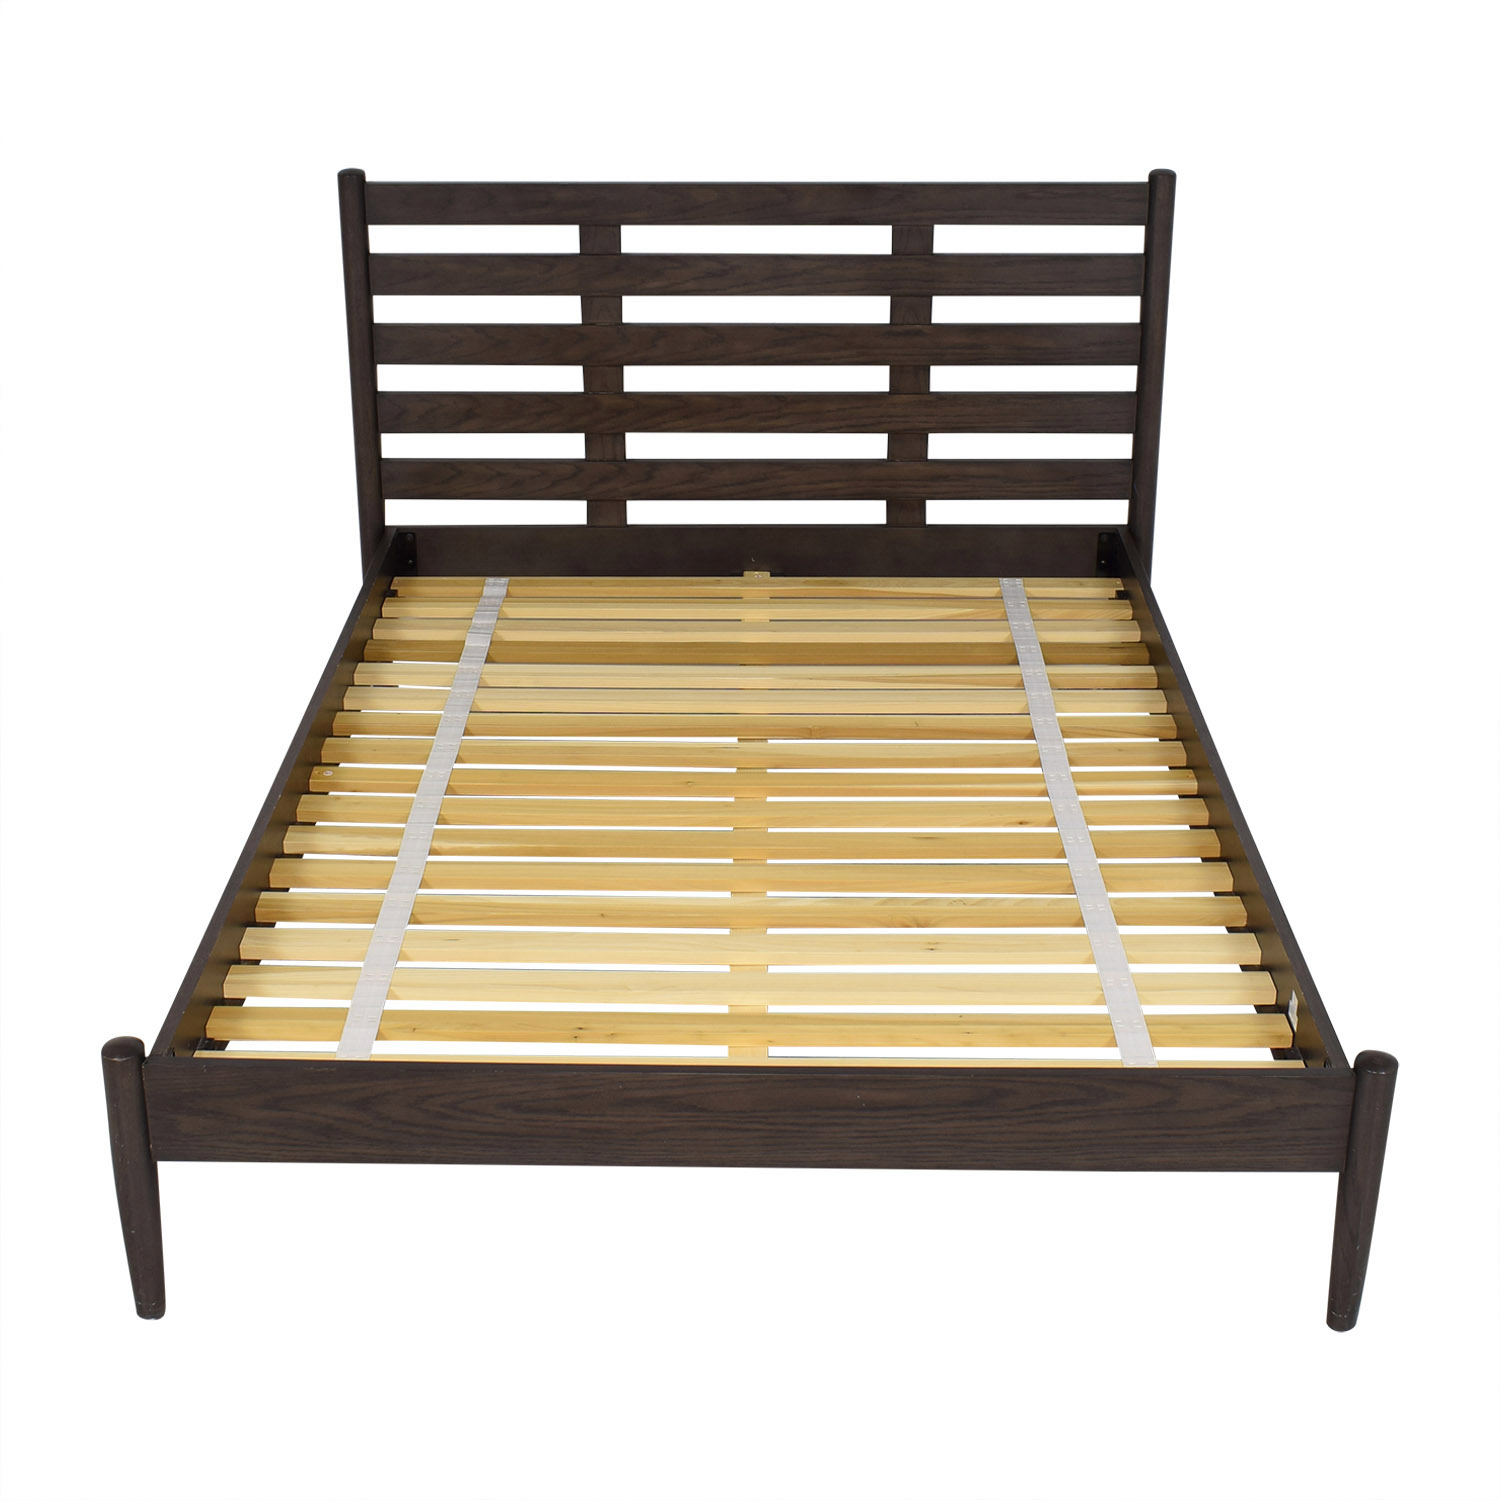 Crate & Barrel Crate & Barrel Barnes Queen Bed for sale